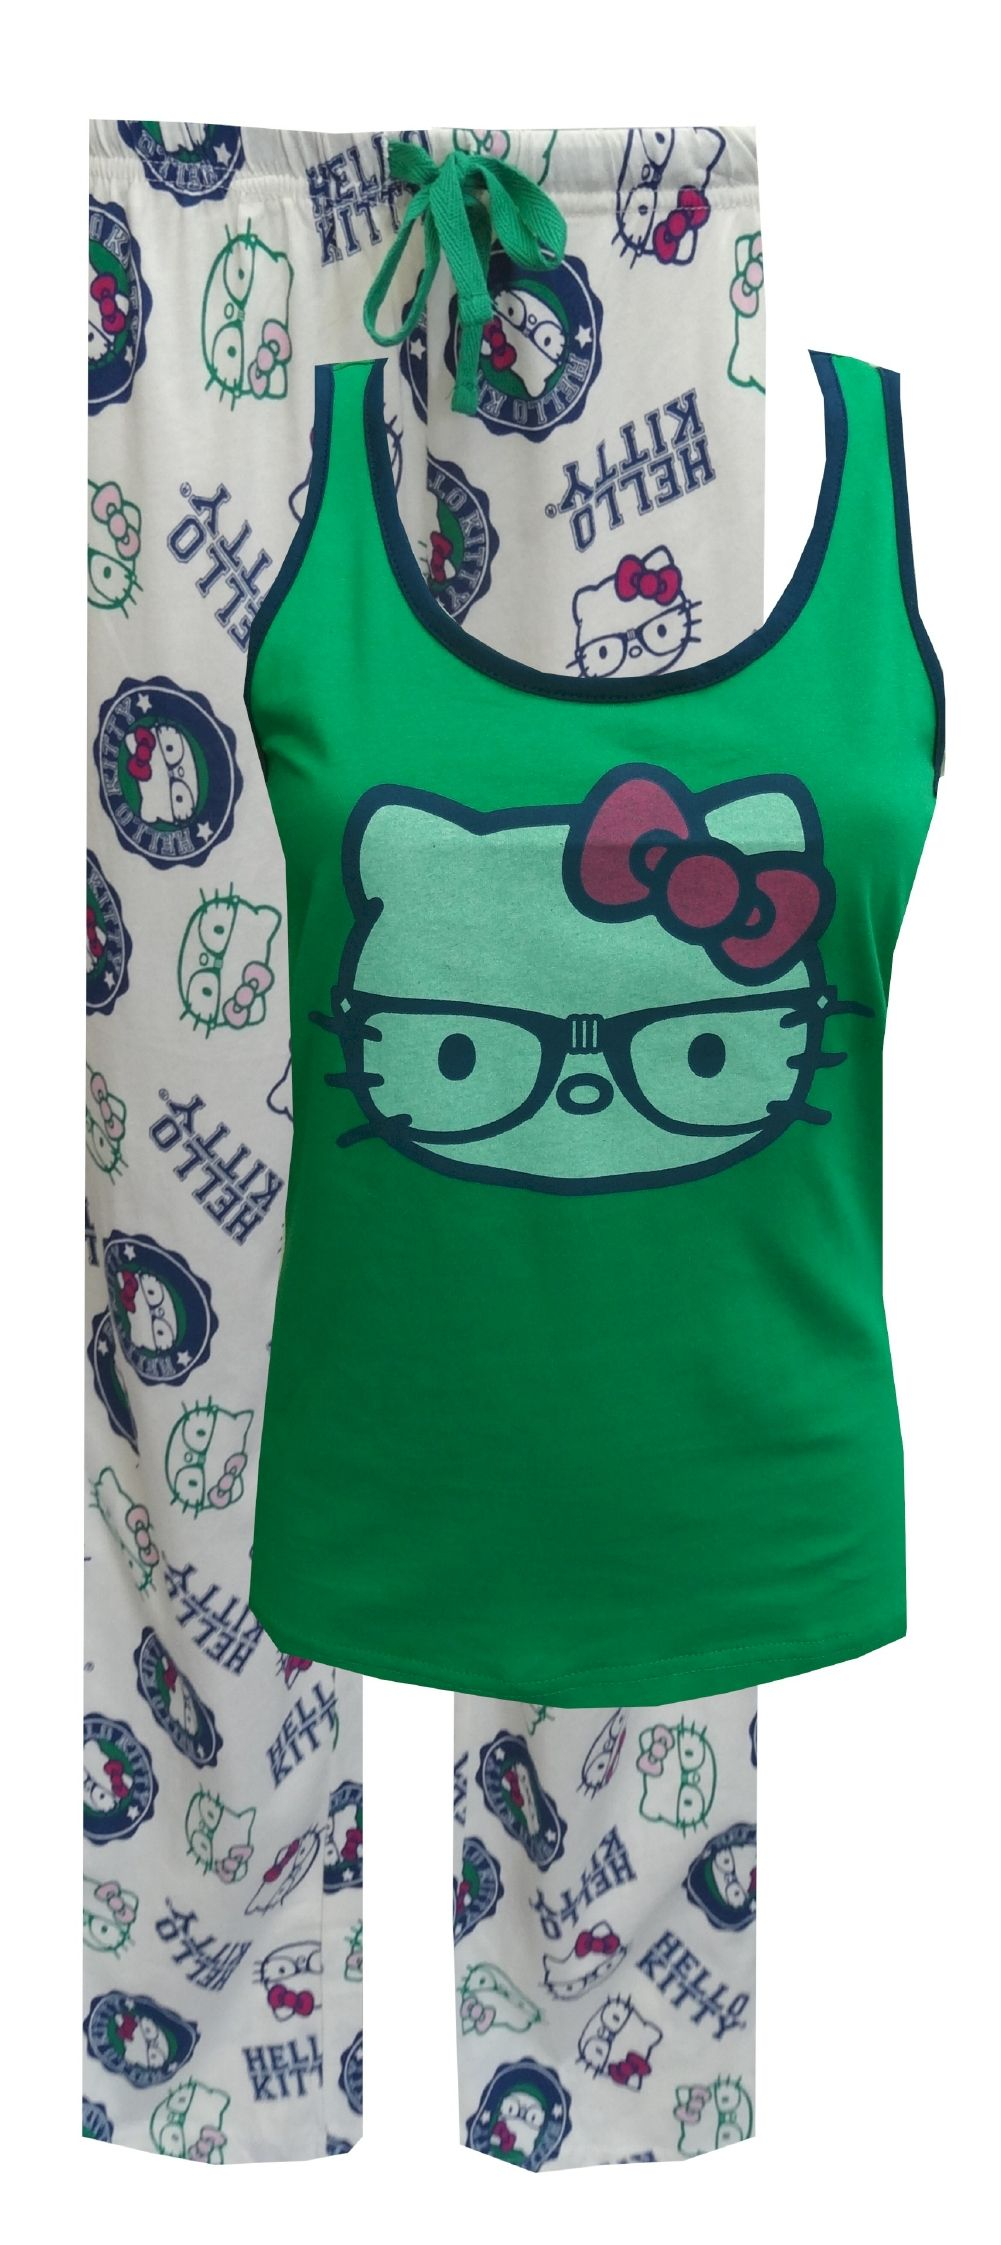 eabe1da34 The best source of fun underwear, loungewear & pajamas since 1999 . Hello  Kitty Clothes, Hello Kitty Items ...